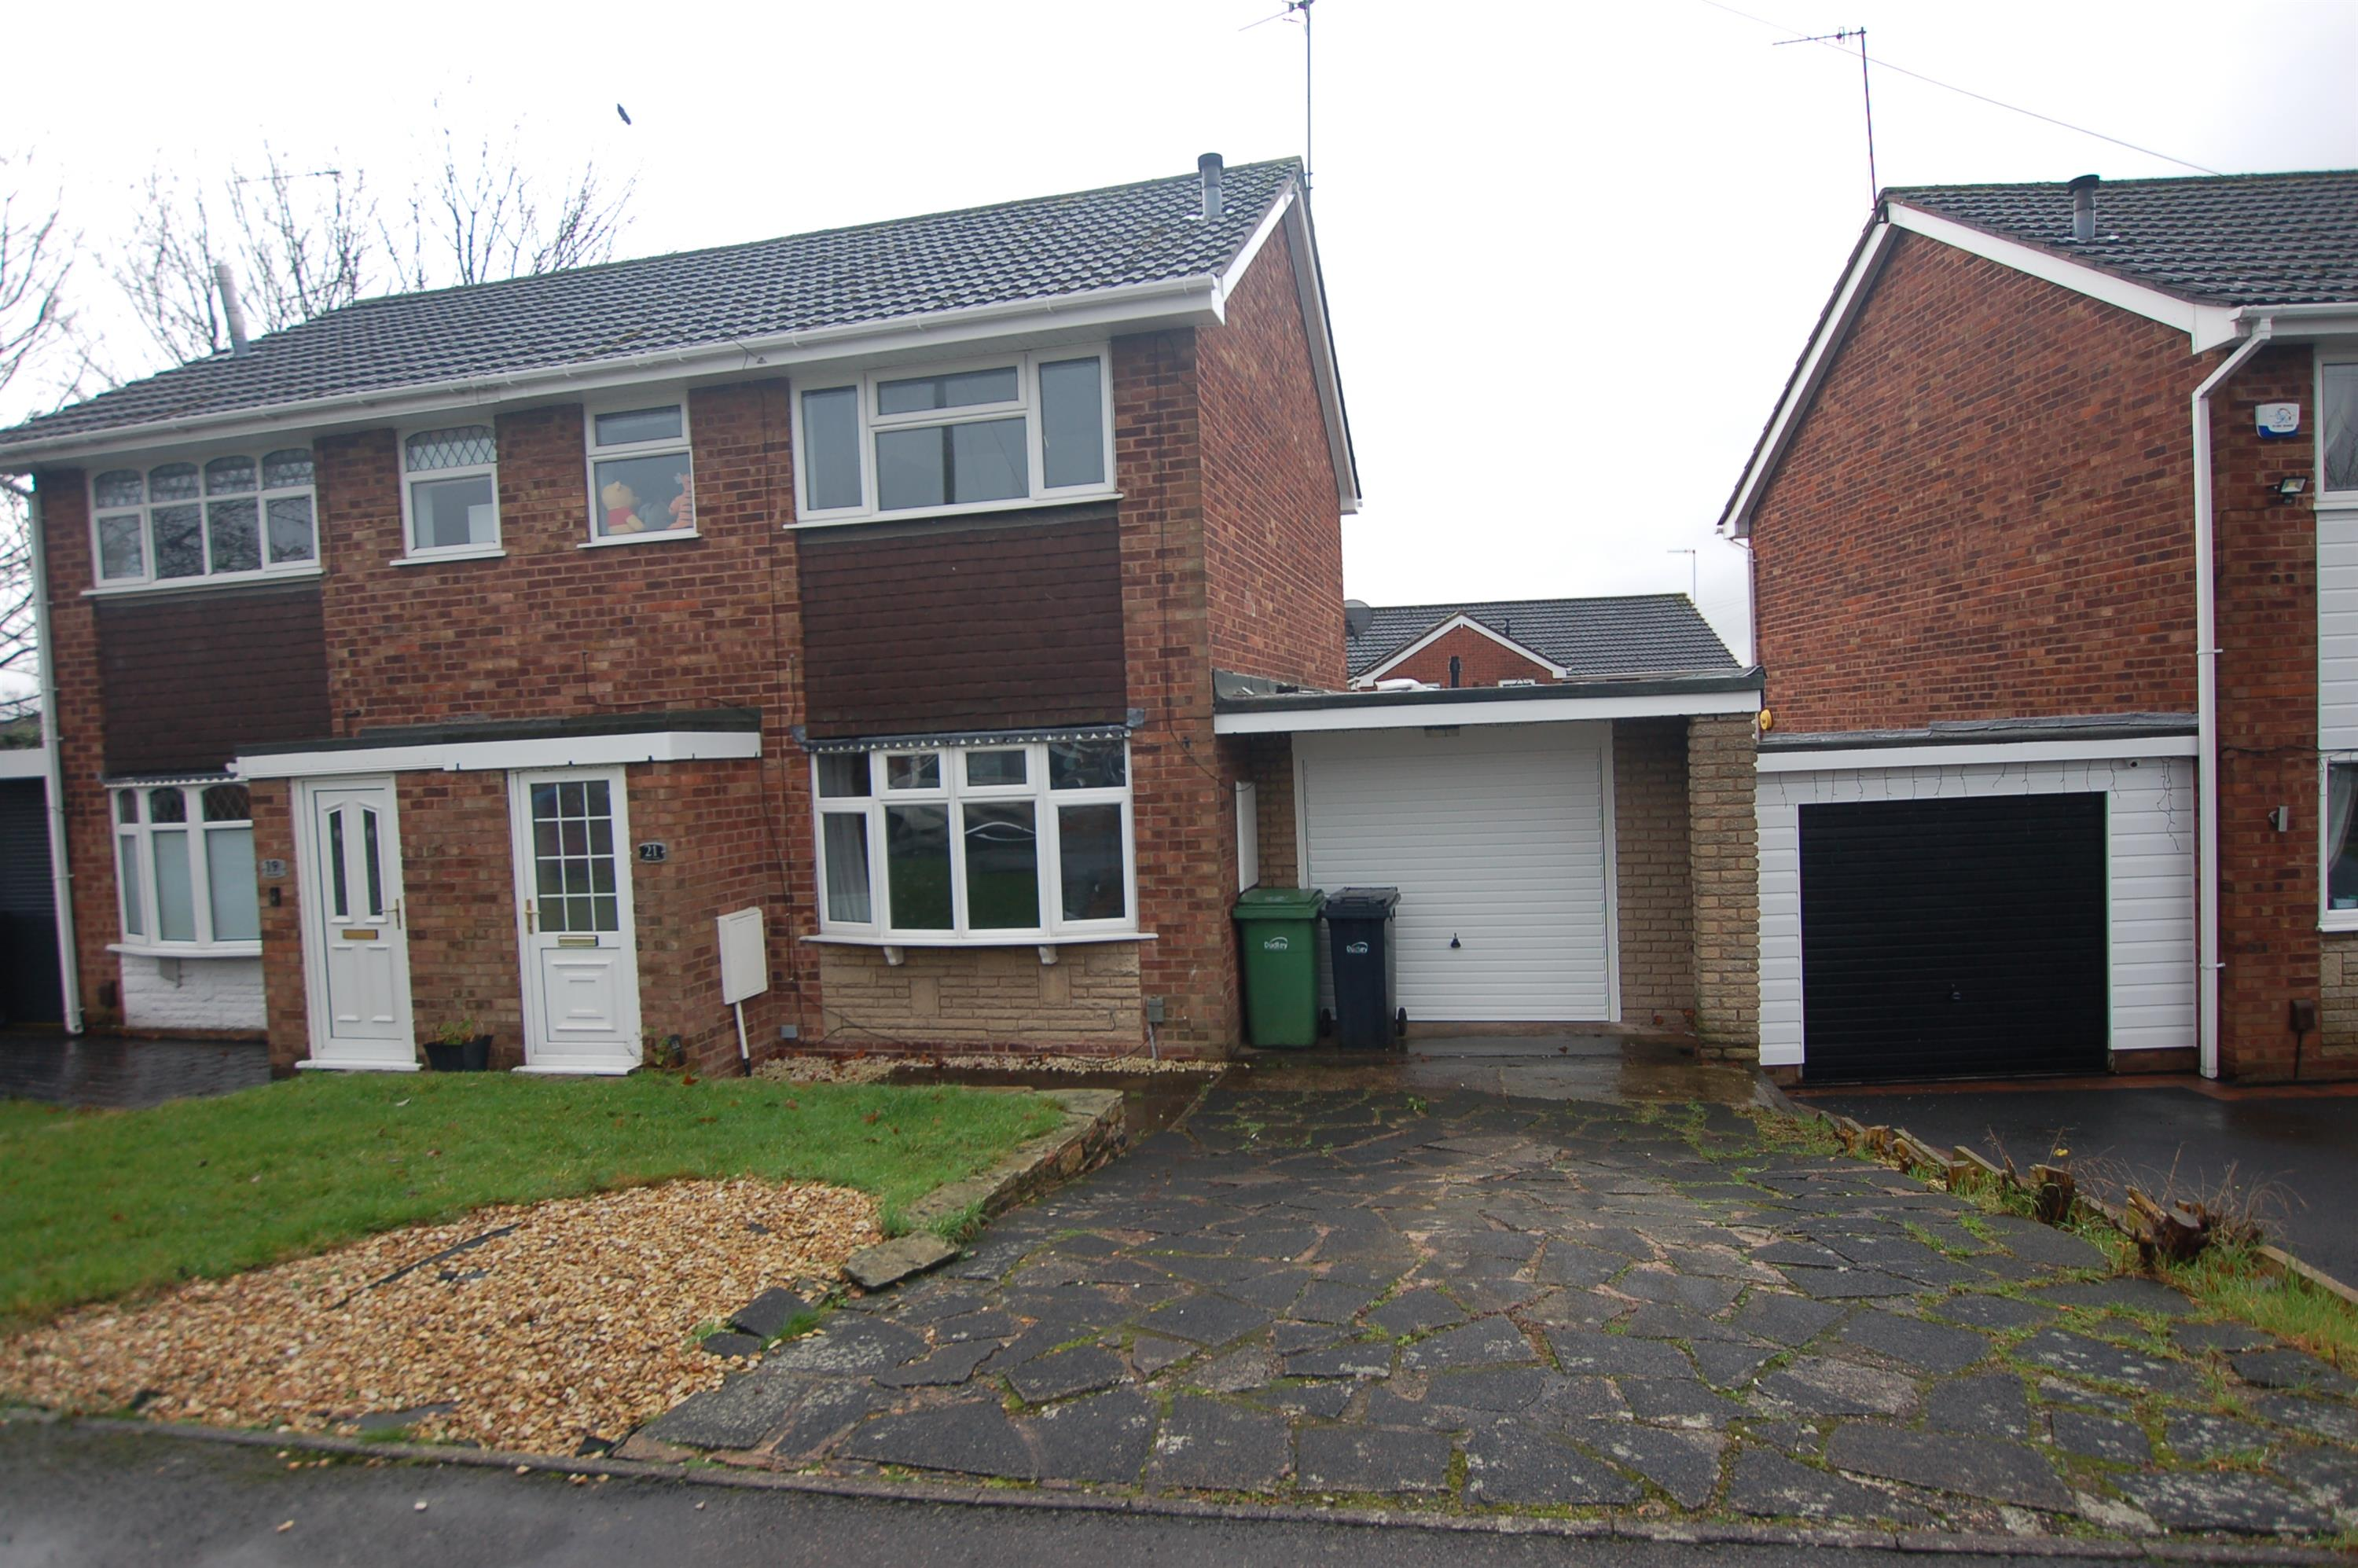 Verity Walk, Wordsley, DY8 4XS